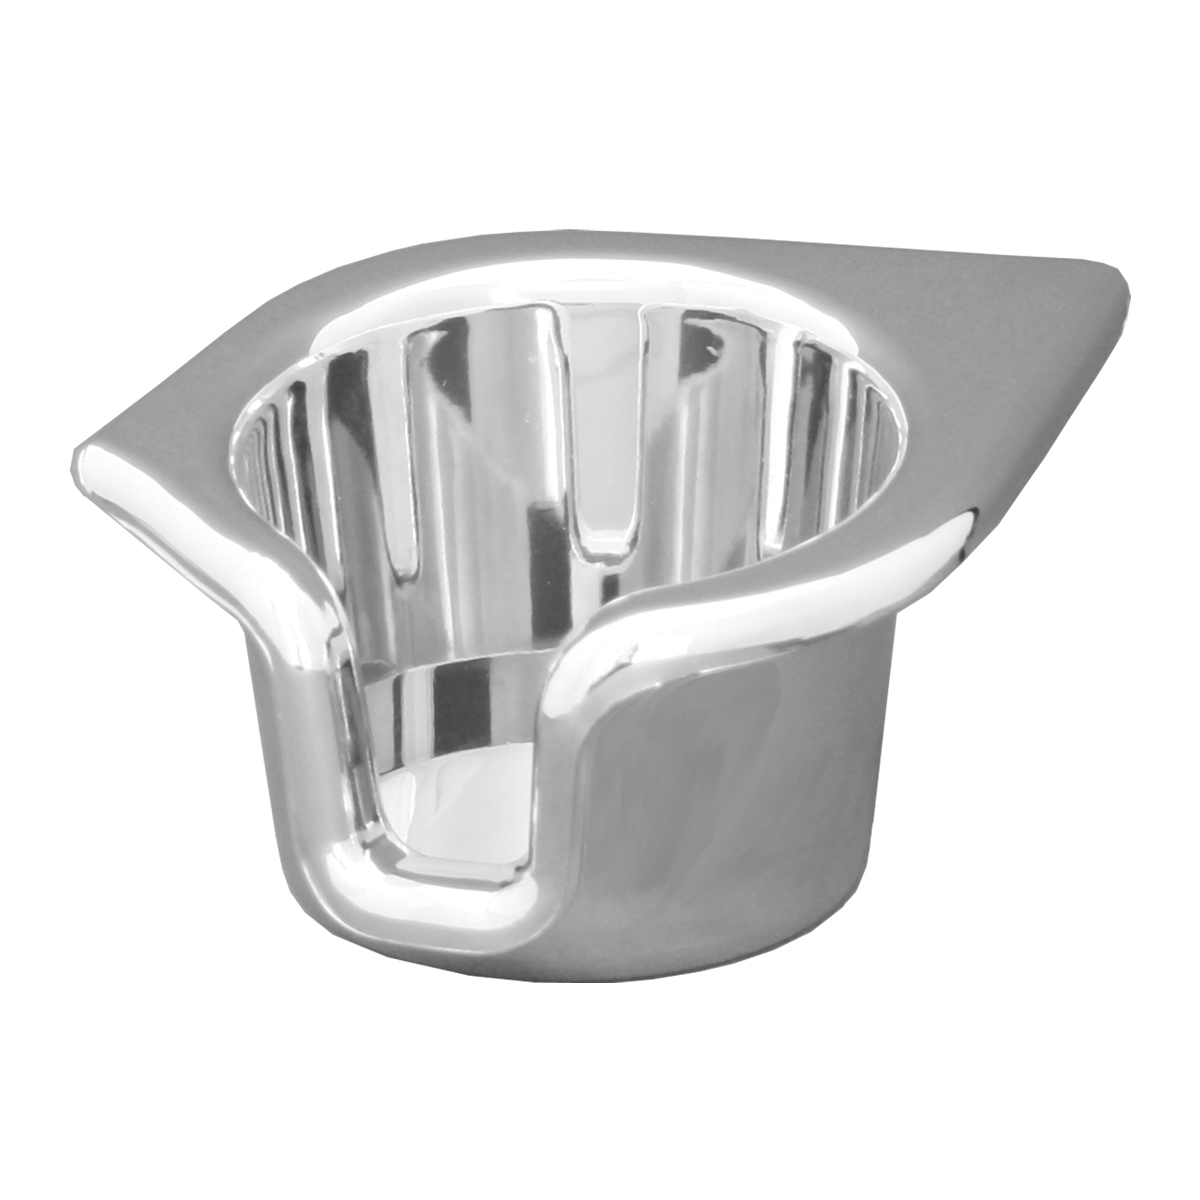 68723 Cup Holder for Peterbilt 357/378/379/385/386/389 2006 & Later